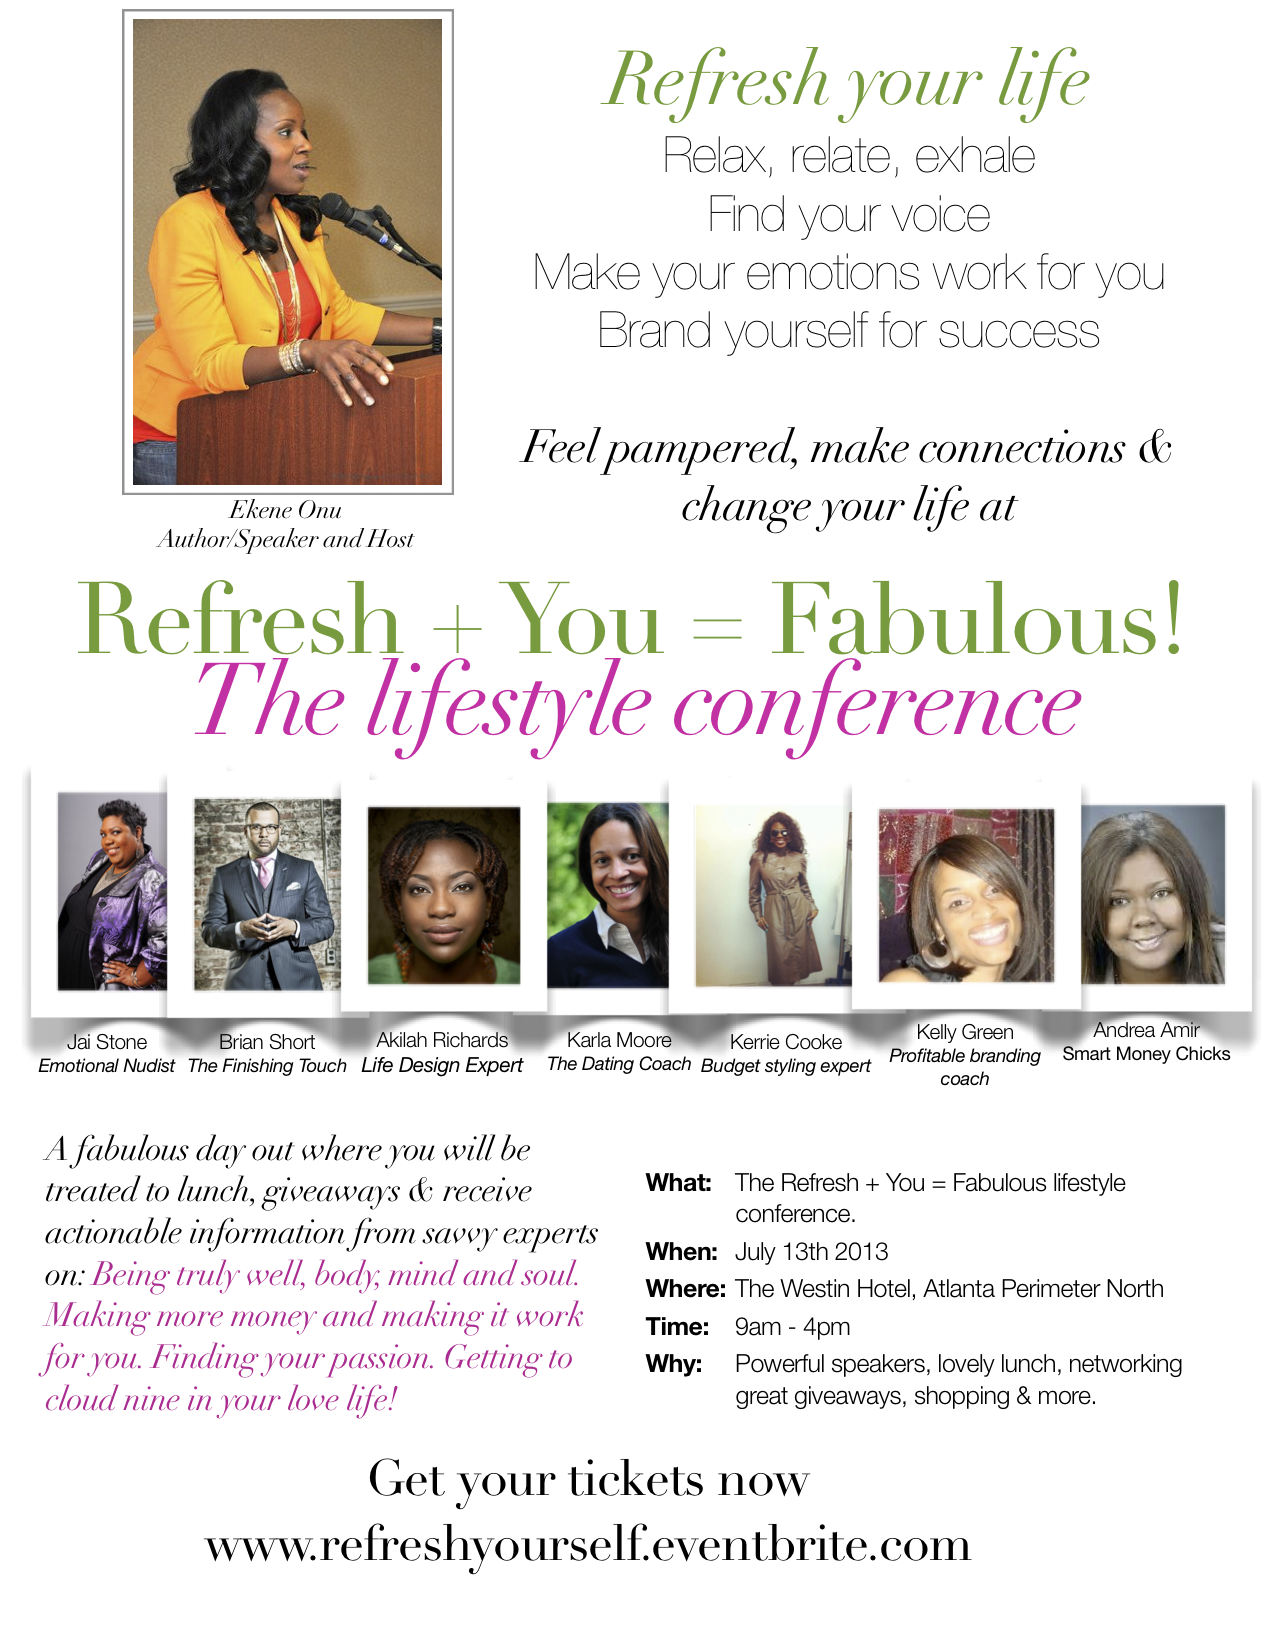 Refresh + You = Fabulous Event in Atlanta